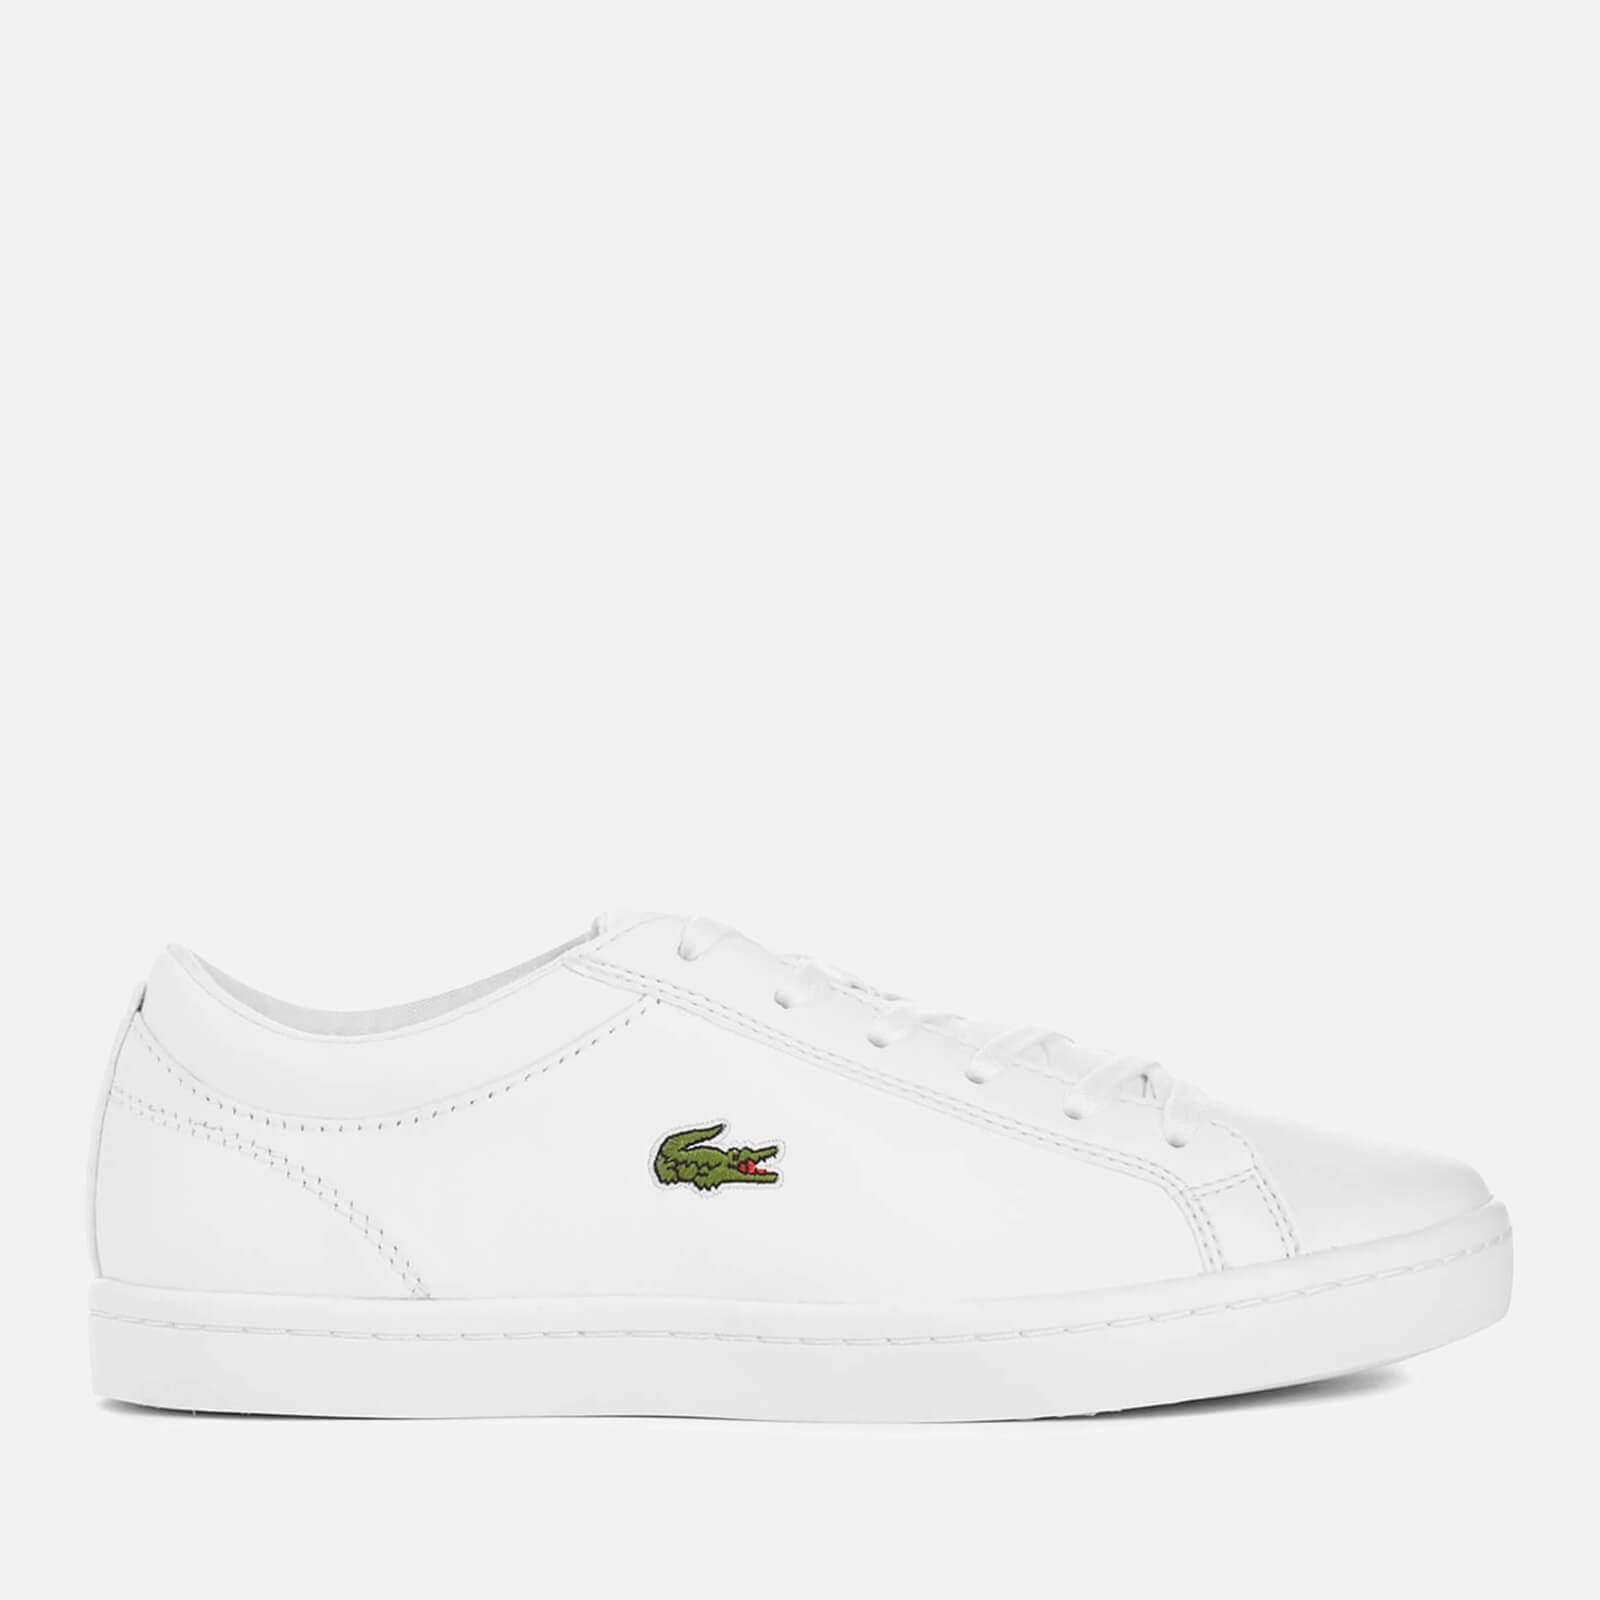 Lacoste Women's Straightset Bl 1 Leather Court Trainers - White - UK 7 - White